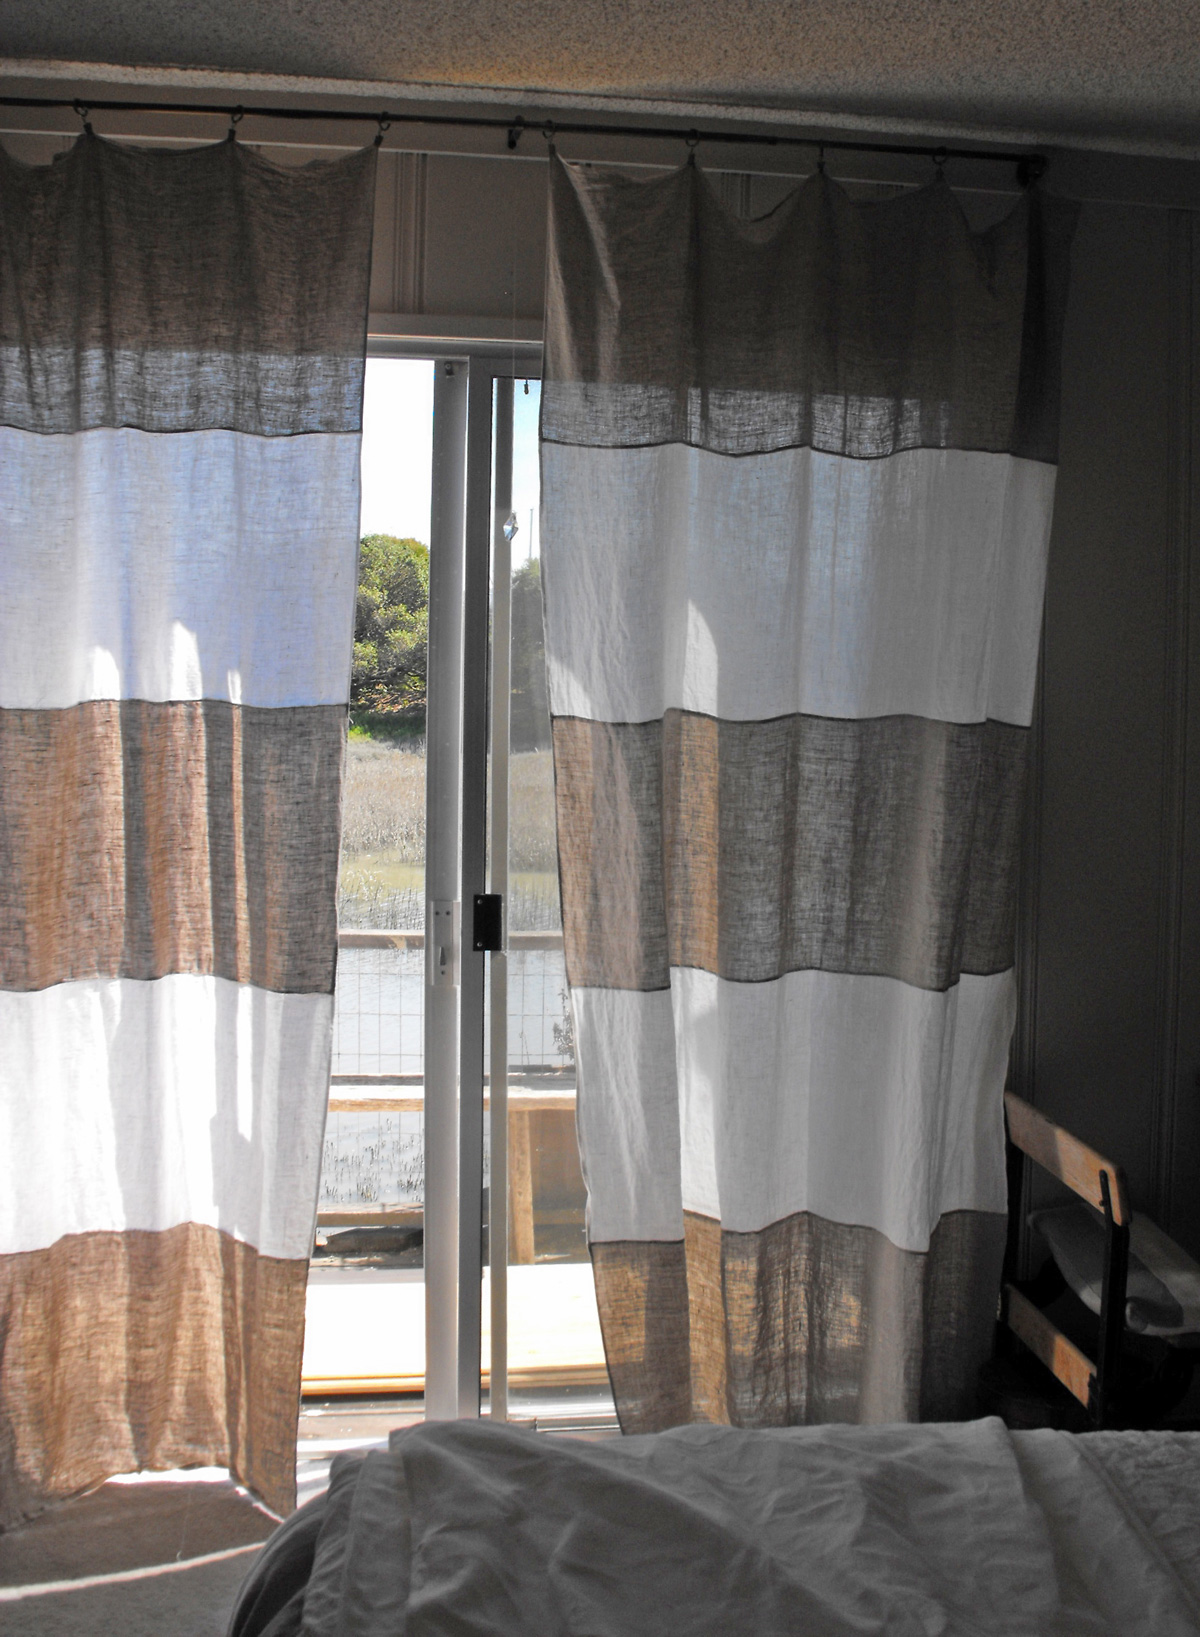 curtains-inspiration-awesome-linen-grey-and-white-curtains-striped-for-front-door-treatment-drapes-with-alumunium-frame-as-decorate-in-modern-entryway-designs-sightly-white-curtains-window-treatment